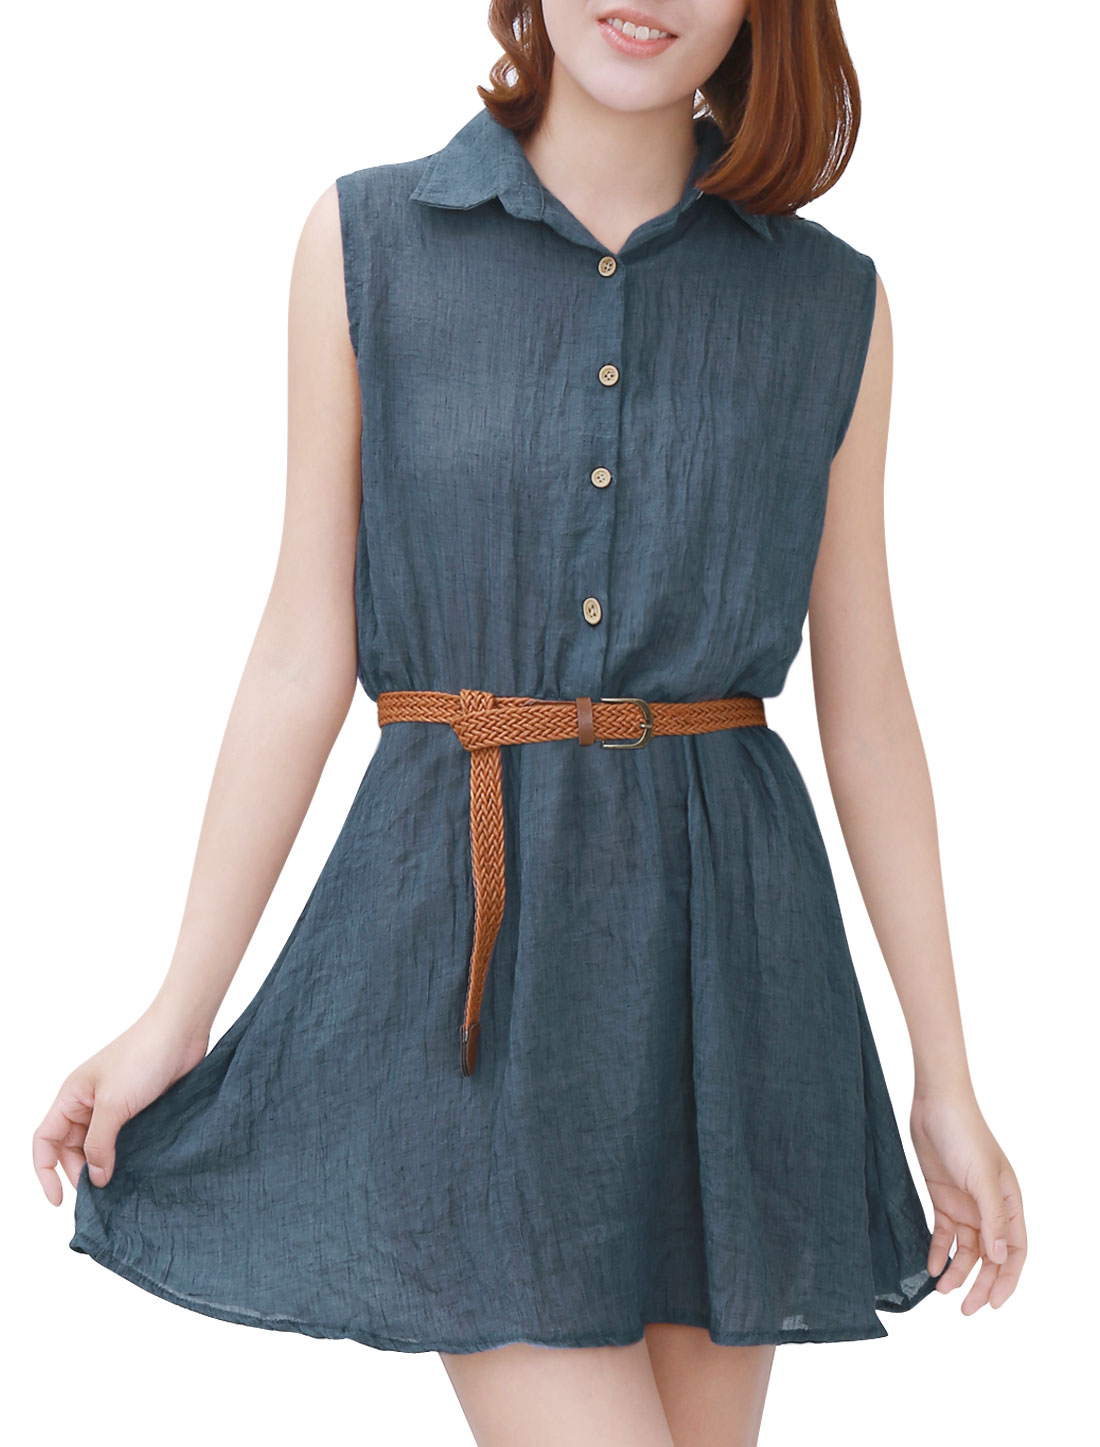 Women Sleeveless Point Collar Elastic Waist Shirt Dress w Belt Navy Blue S